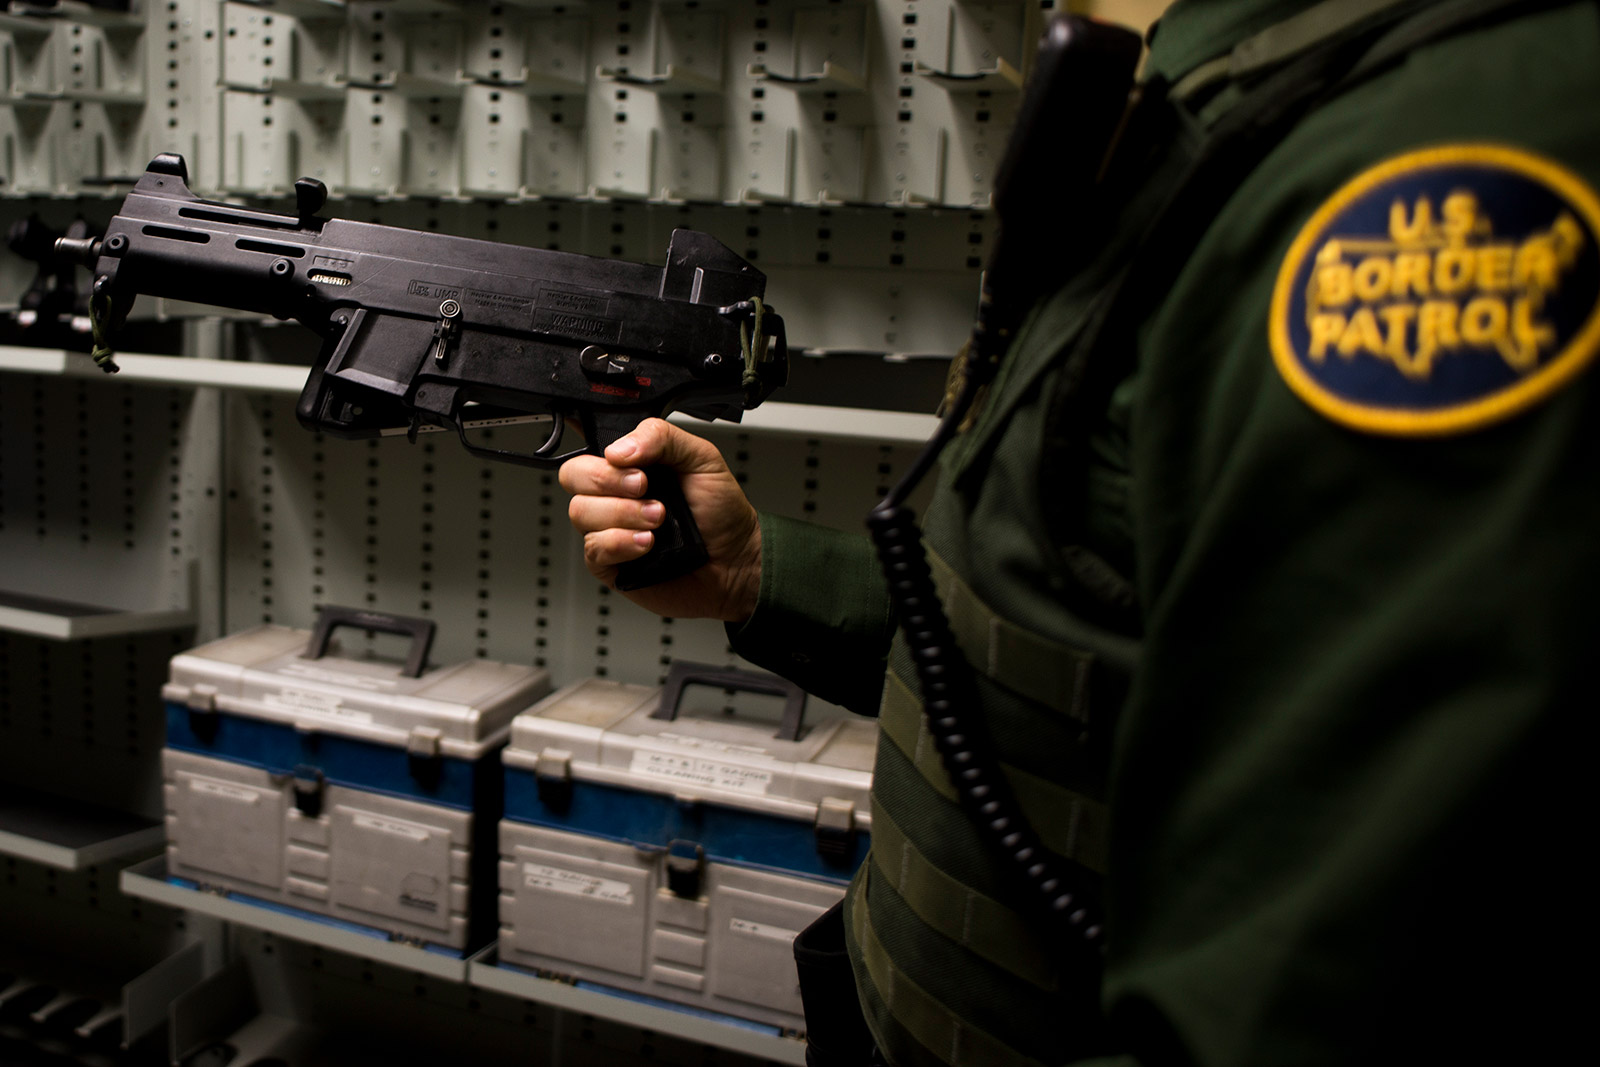 Joshua Wilson, vice president of the San Diego Border Patrol union, shows on Sept. 5, 2017, the types of weapons available to field agents for patrolling the U.S.-Mexico border. <em>(Brandon Quester/inewsource)</em>